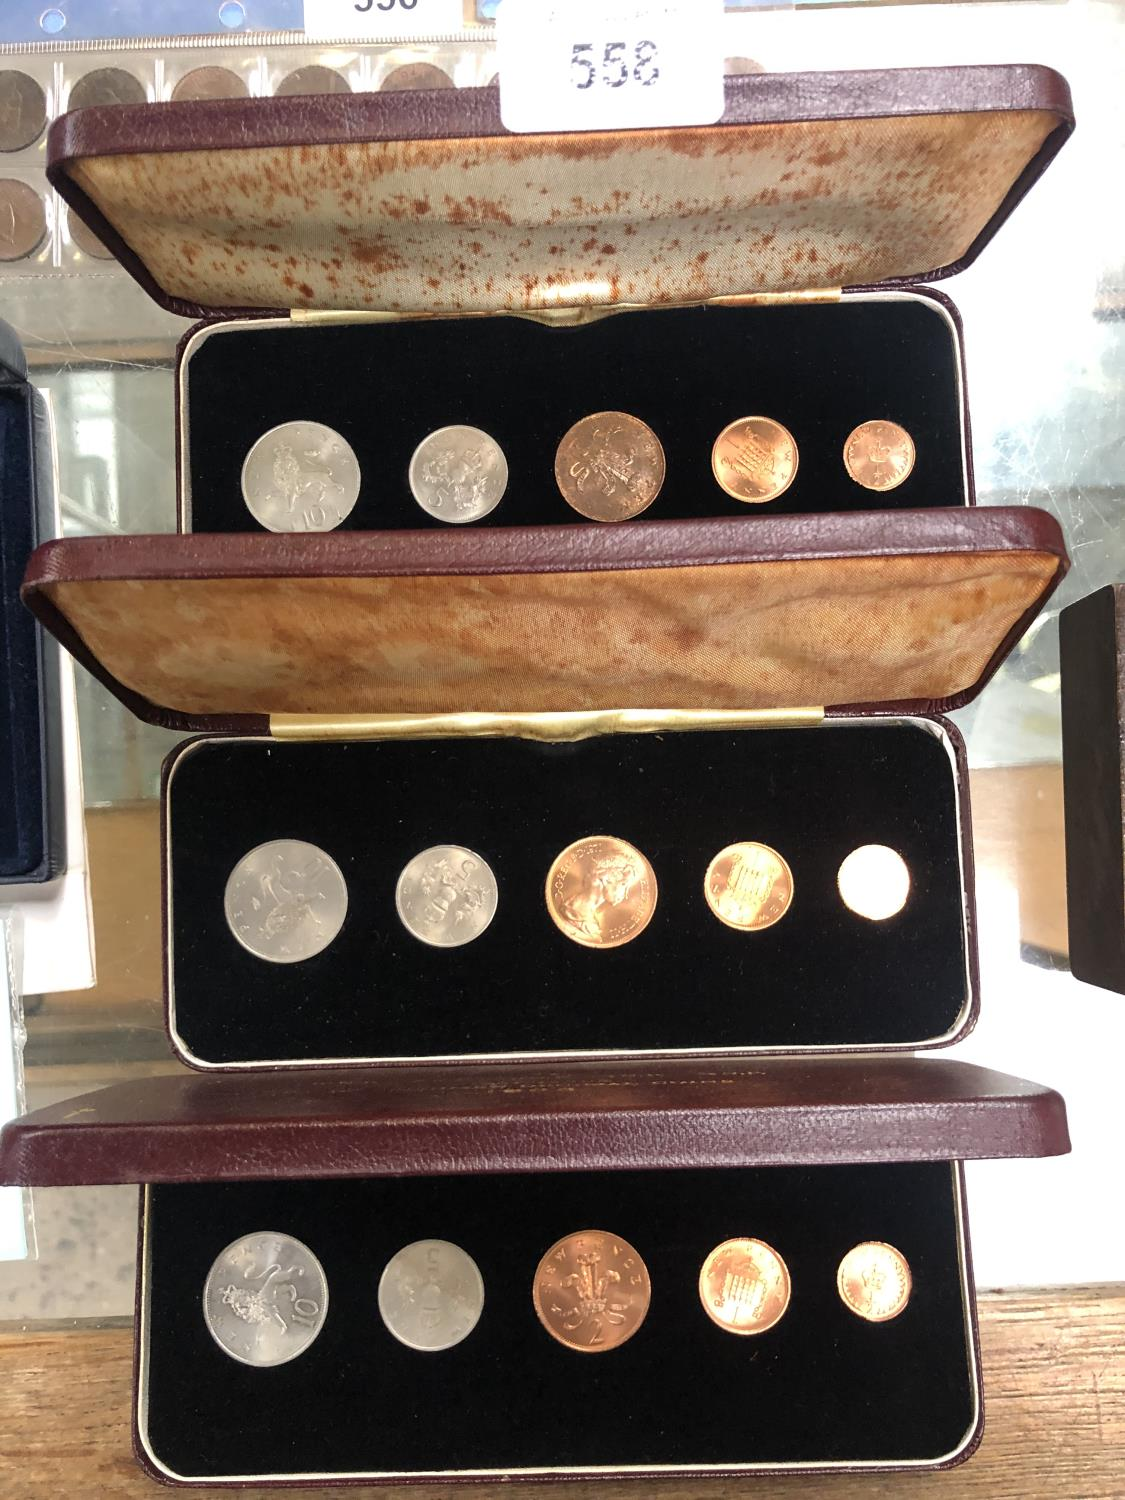 Lot 558 - THREE CASED 1968 'FIRST PROOF' DECIMAL COIN SETS